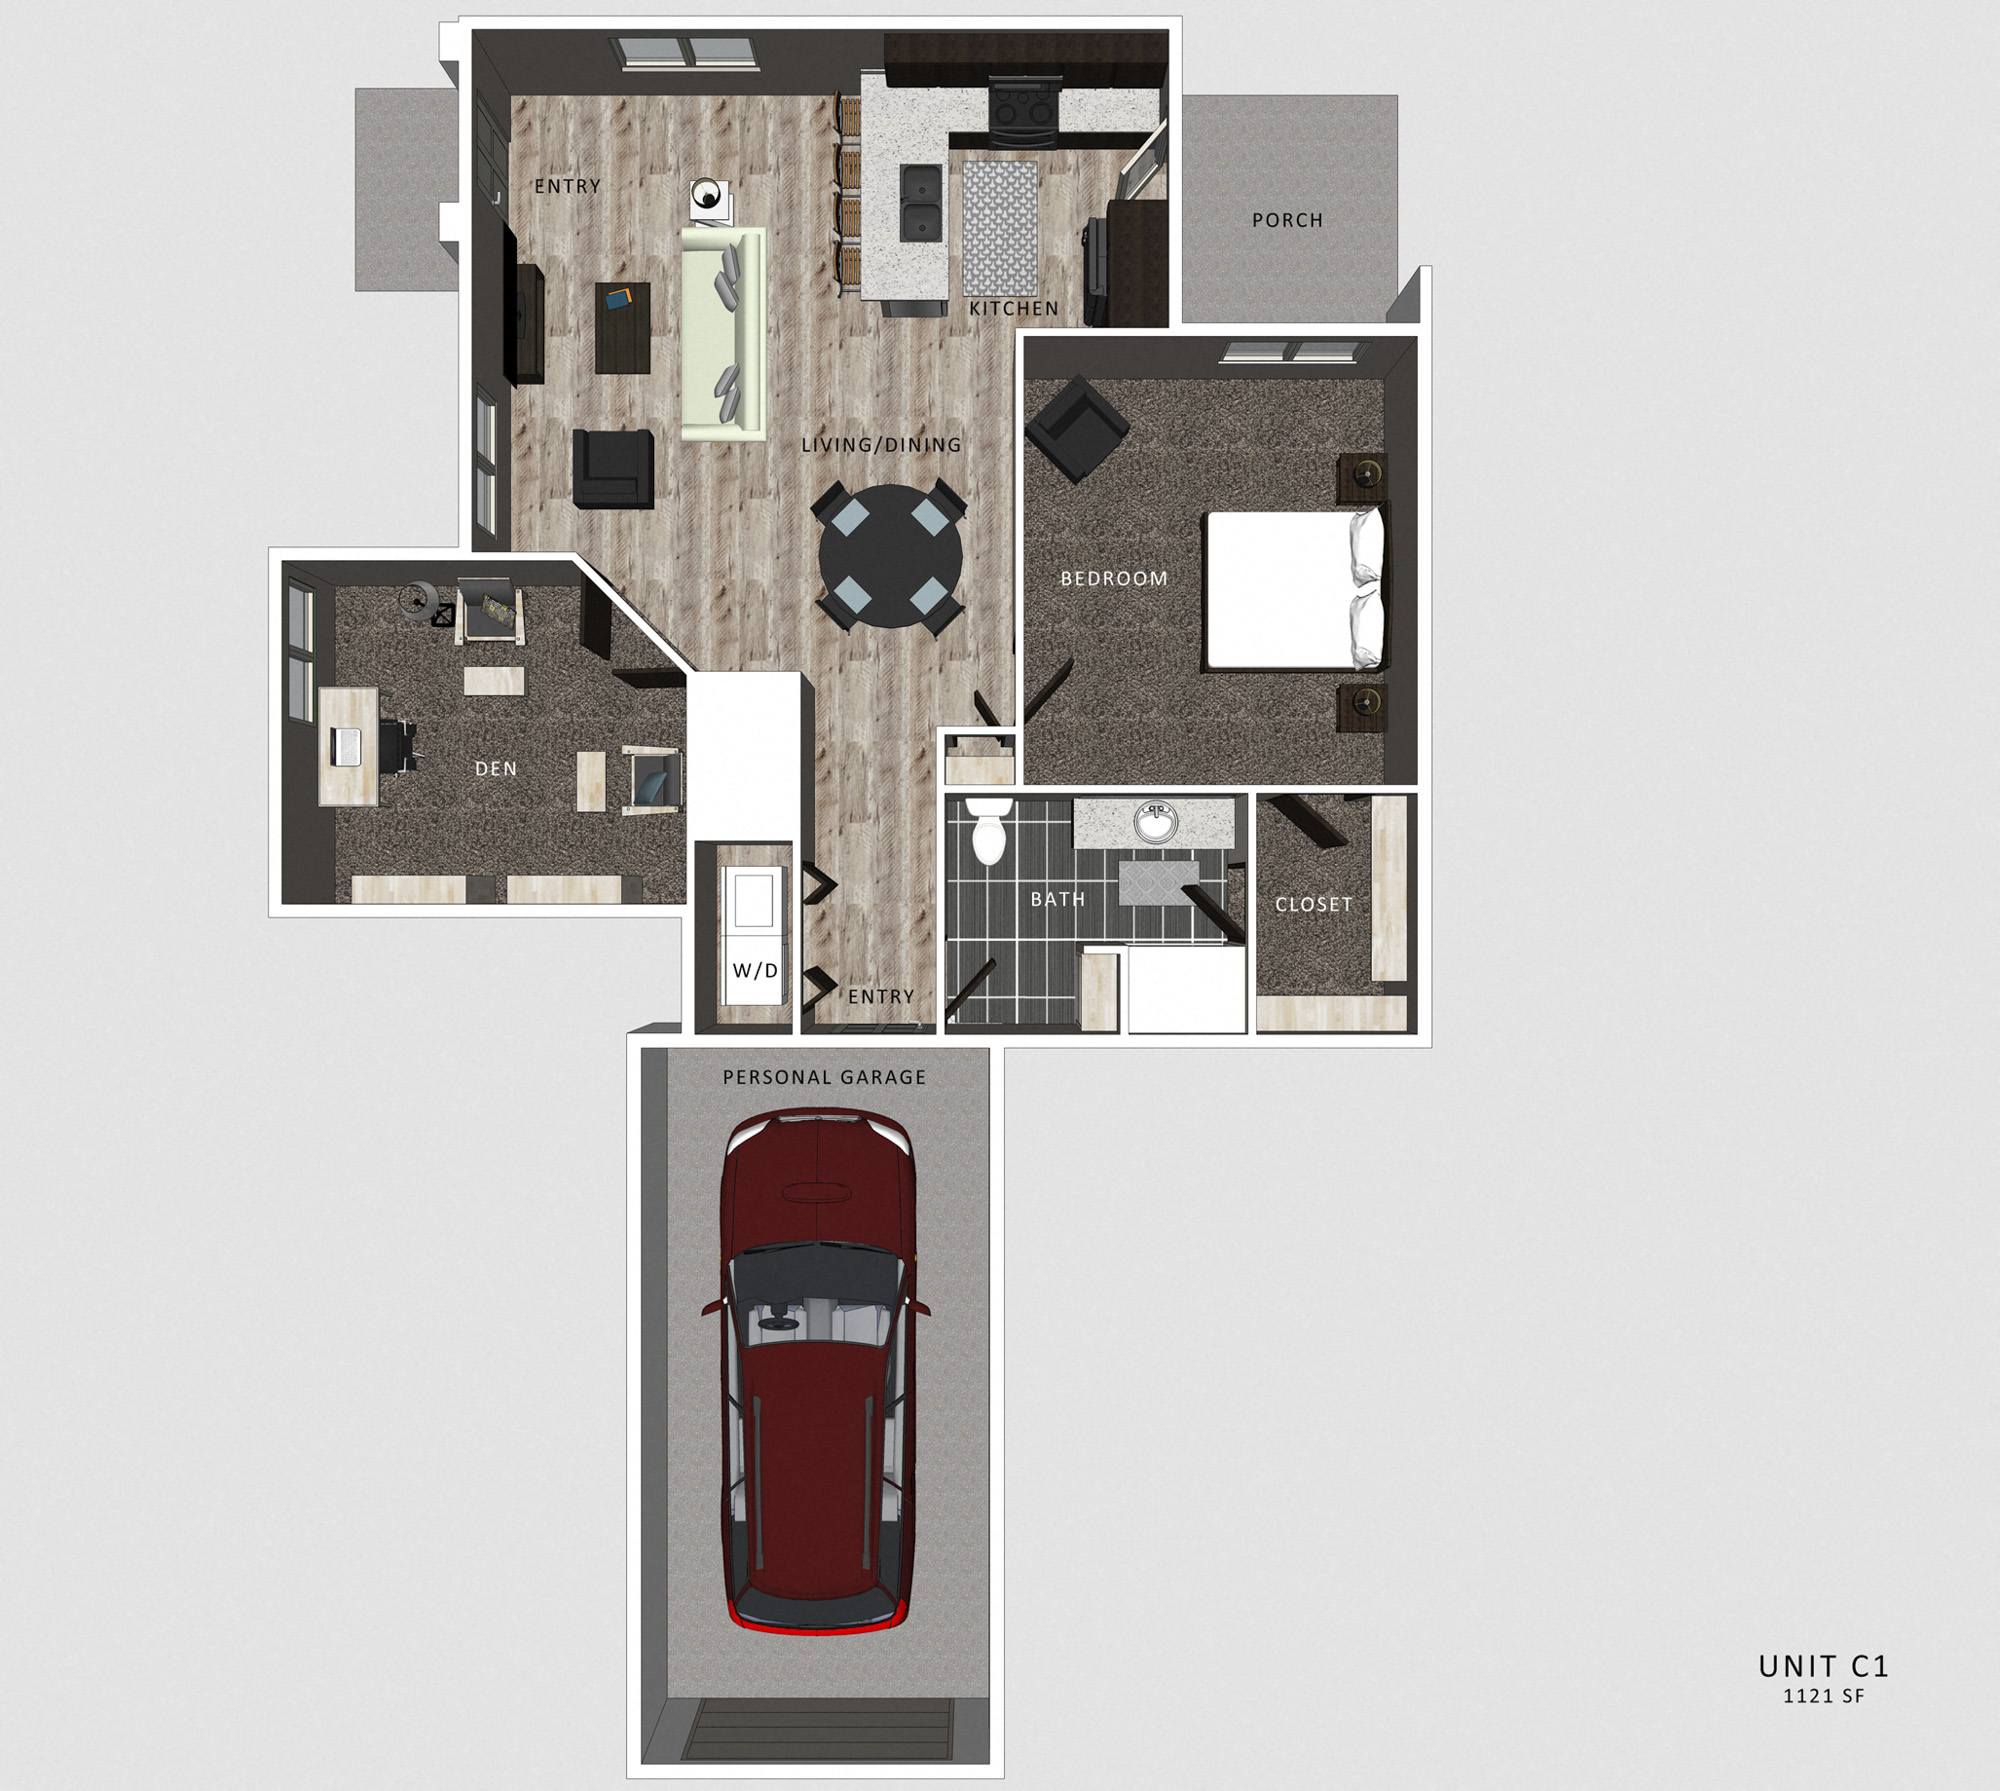 Superior 1 Bedroom Apartment Casper Floor Plan At North Pointe Villas